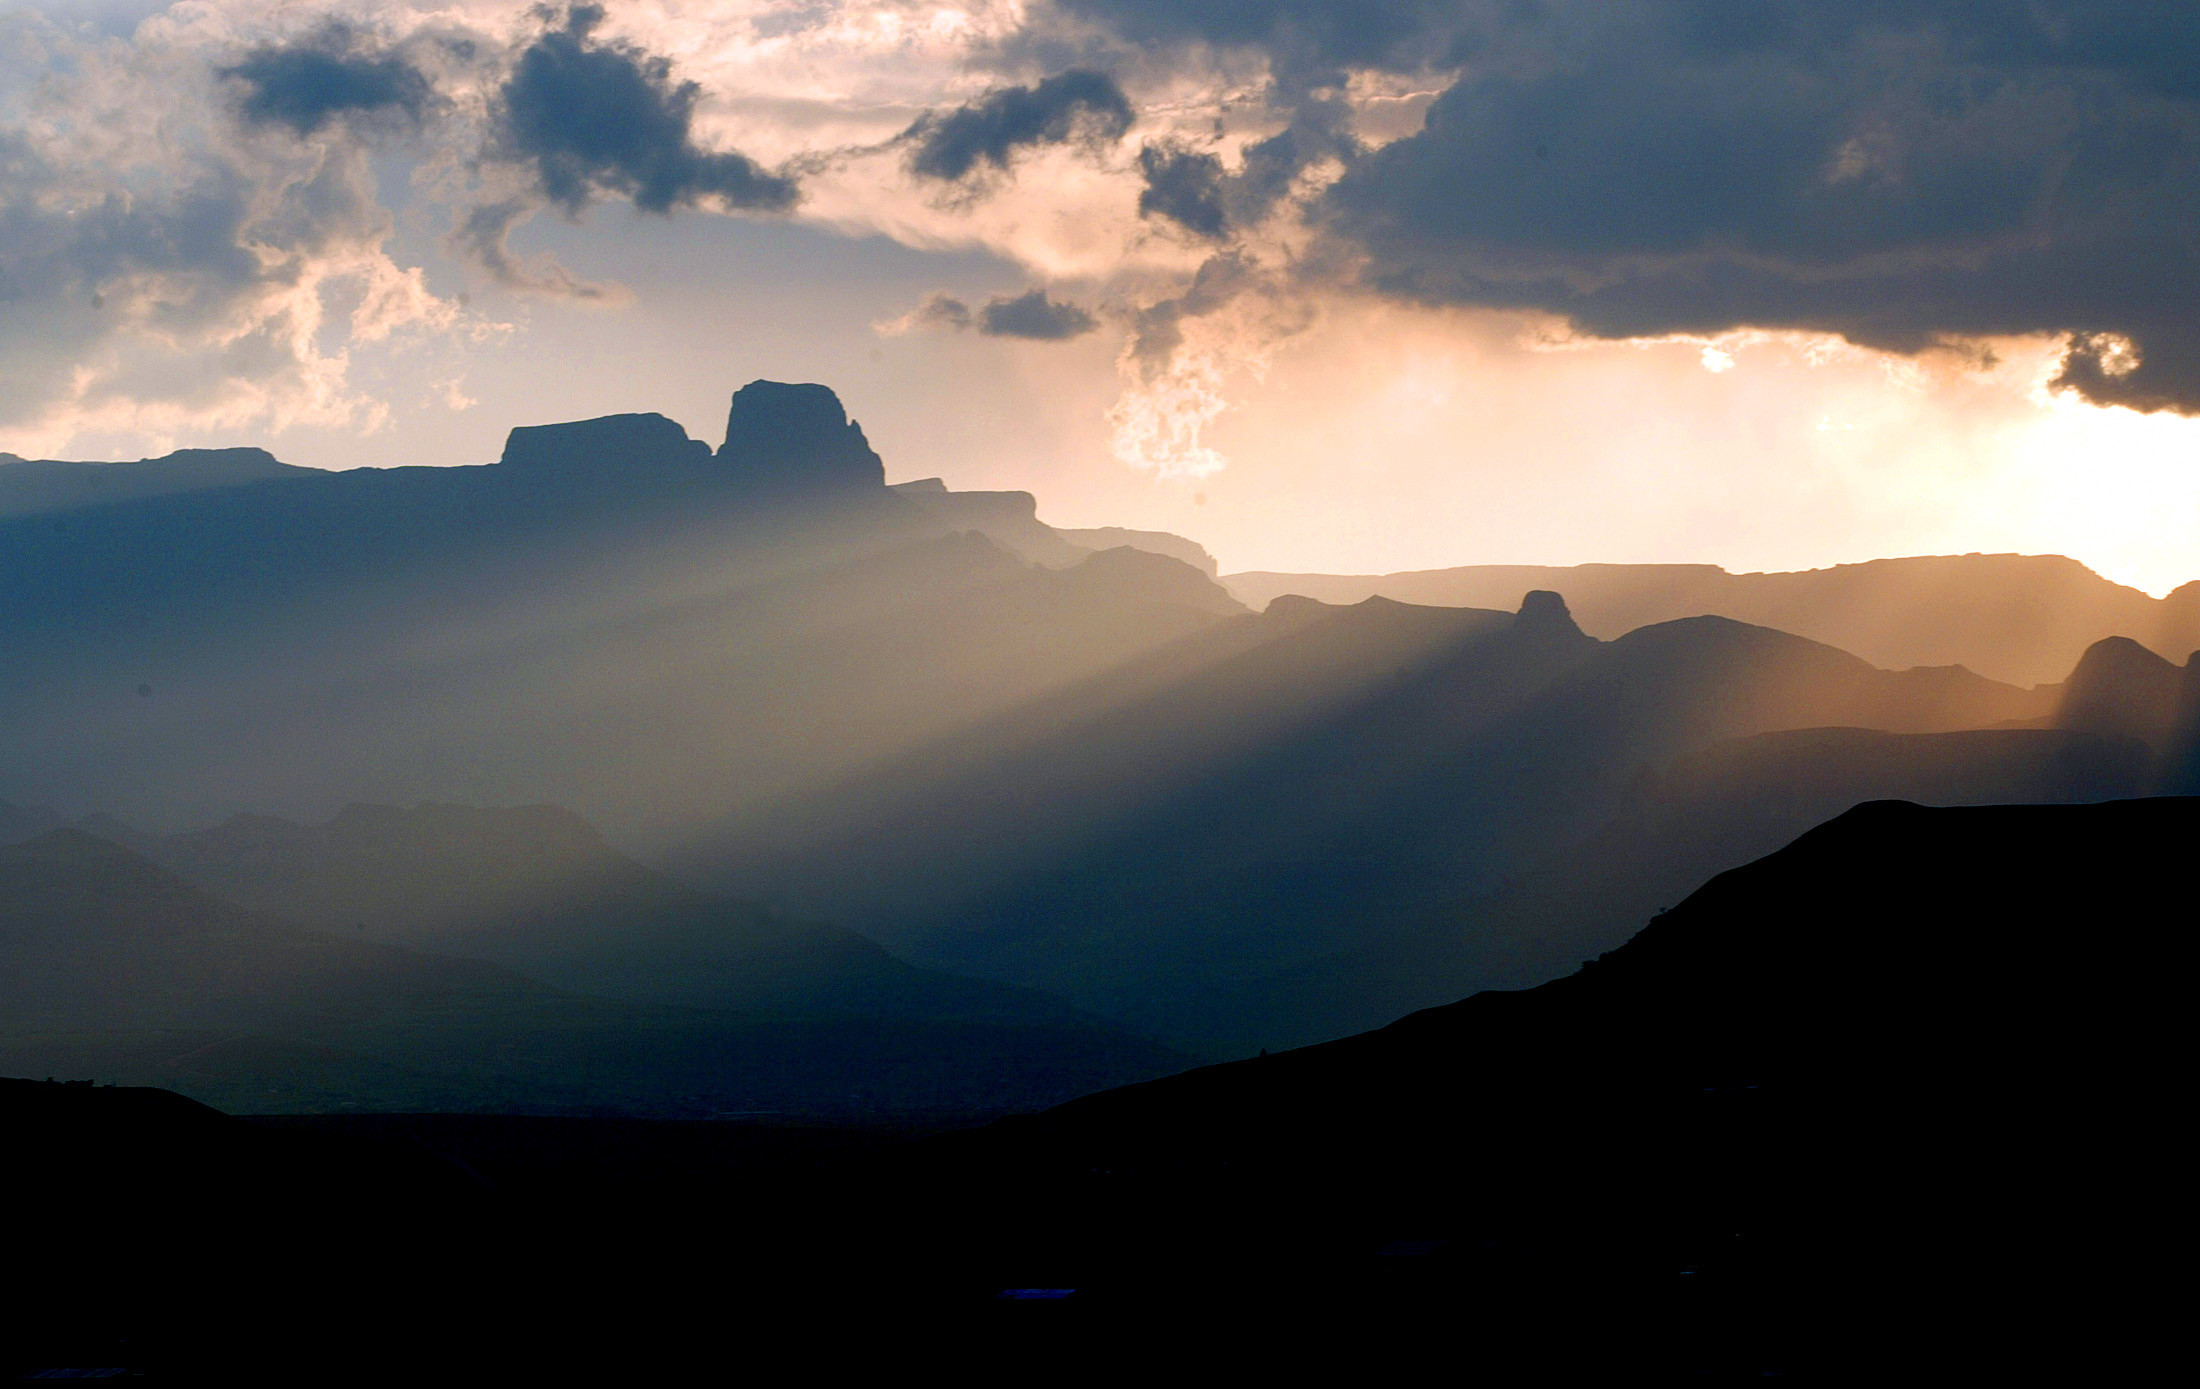 Sun sets over part of South Africa's Drakensberg Mountain range in northern KwaZulu-Natal province, South Africa, January 4, 2004. The area draws large numbers of visitors each year who come to savour the natural beauty of its ragged peaks and flowing rivers. NO RIGHTS CLEARANCES OR PERMISSIONS ARE REQUIRED FOR THIS IMAGE REUTERS/Mike Hutchings REUTERS   MH - RP4DRIFXXJAA